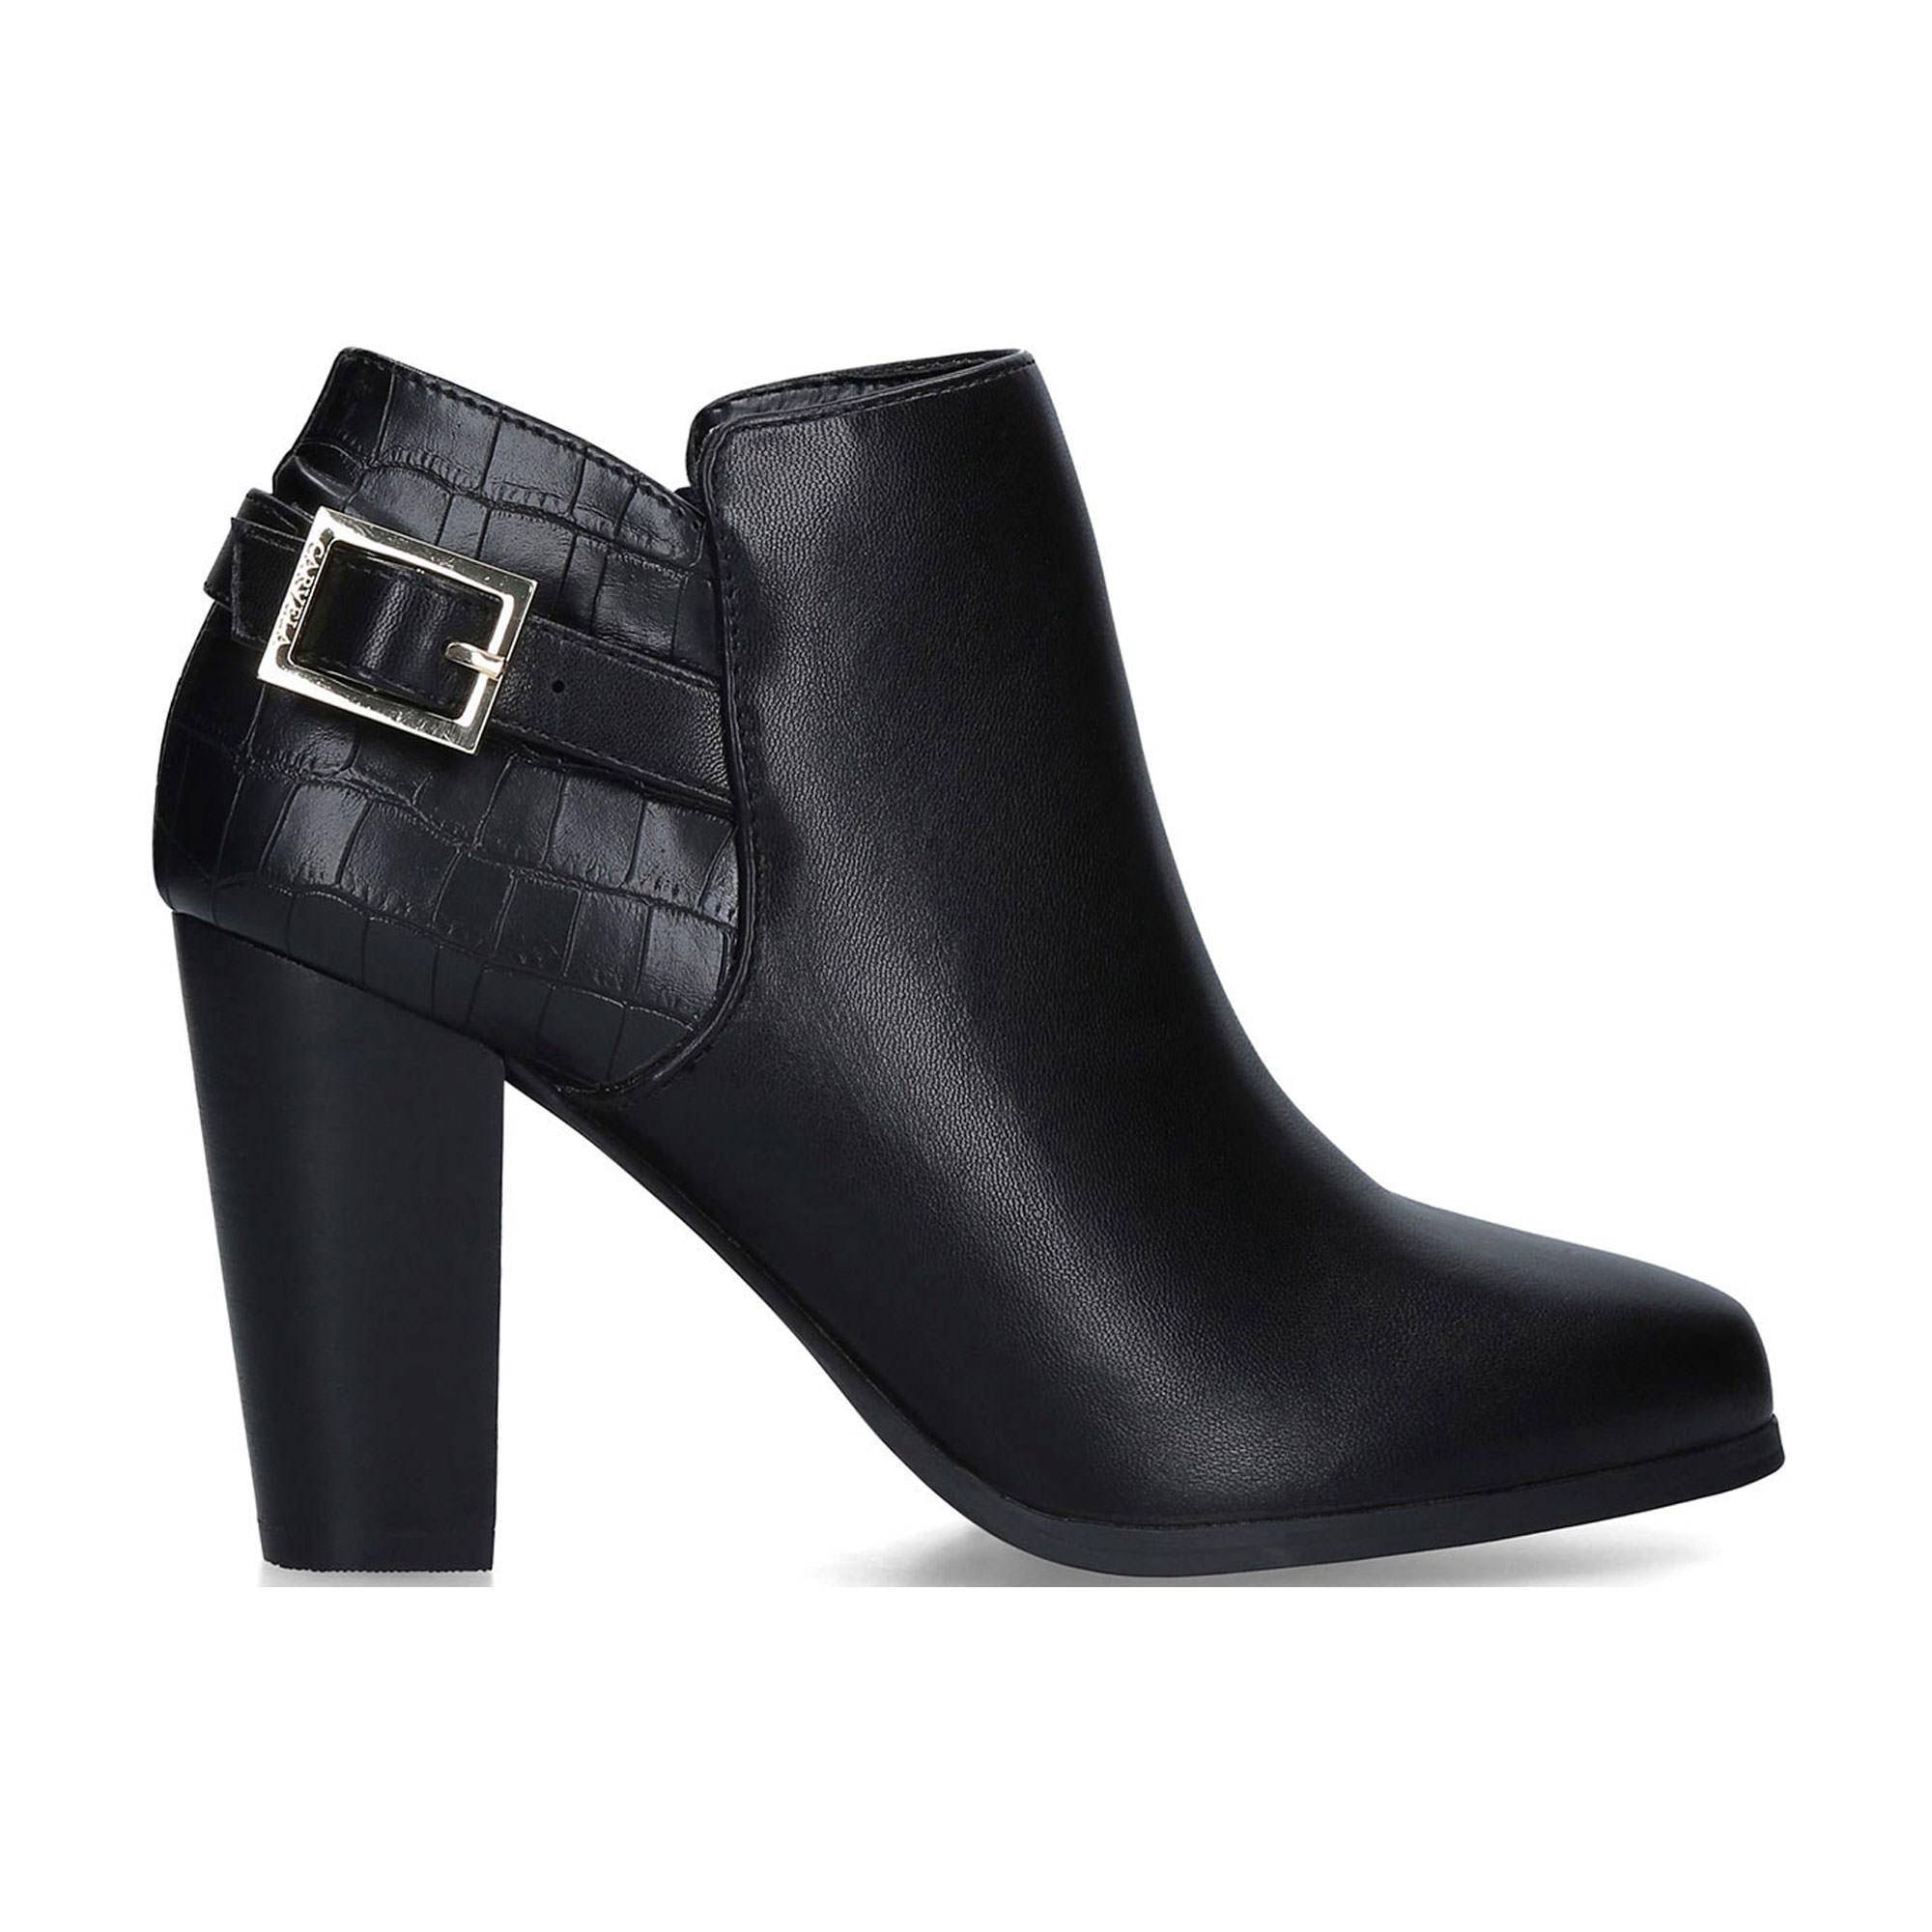 58003433400979BLACK: Shoot Ankle Boots